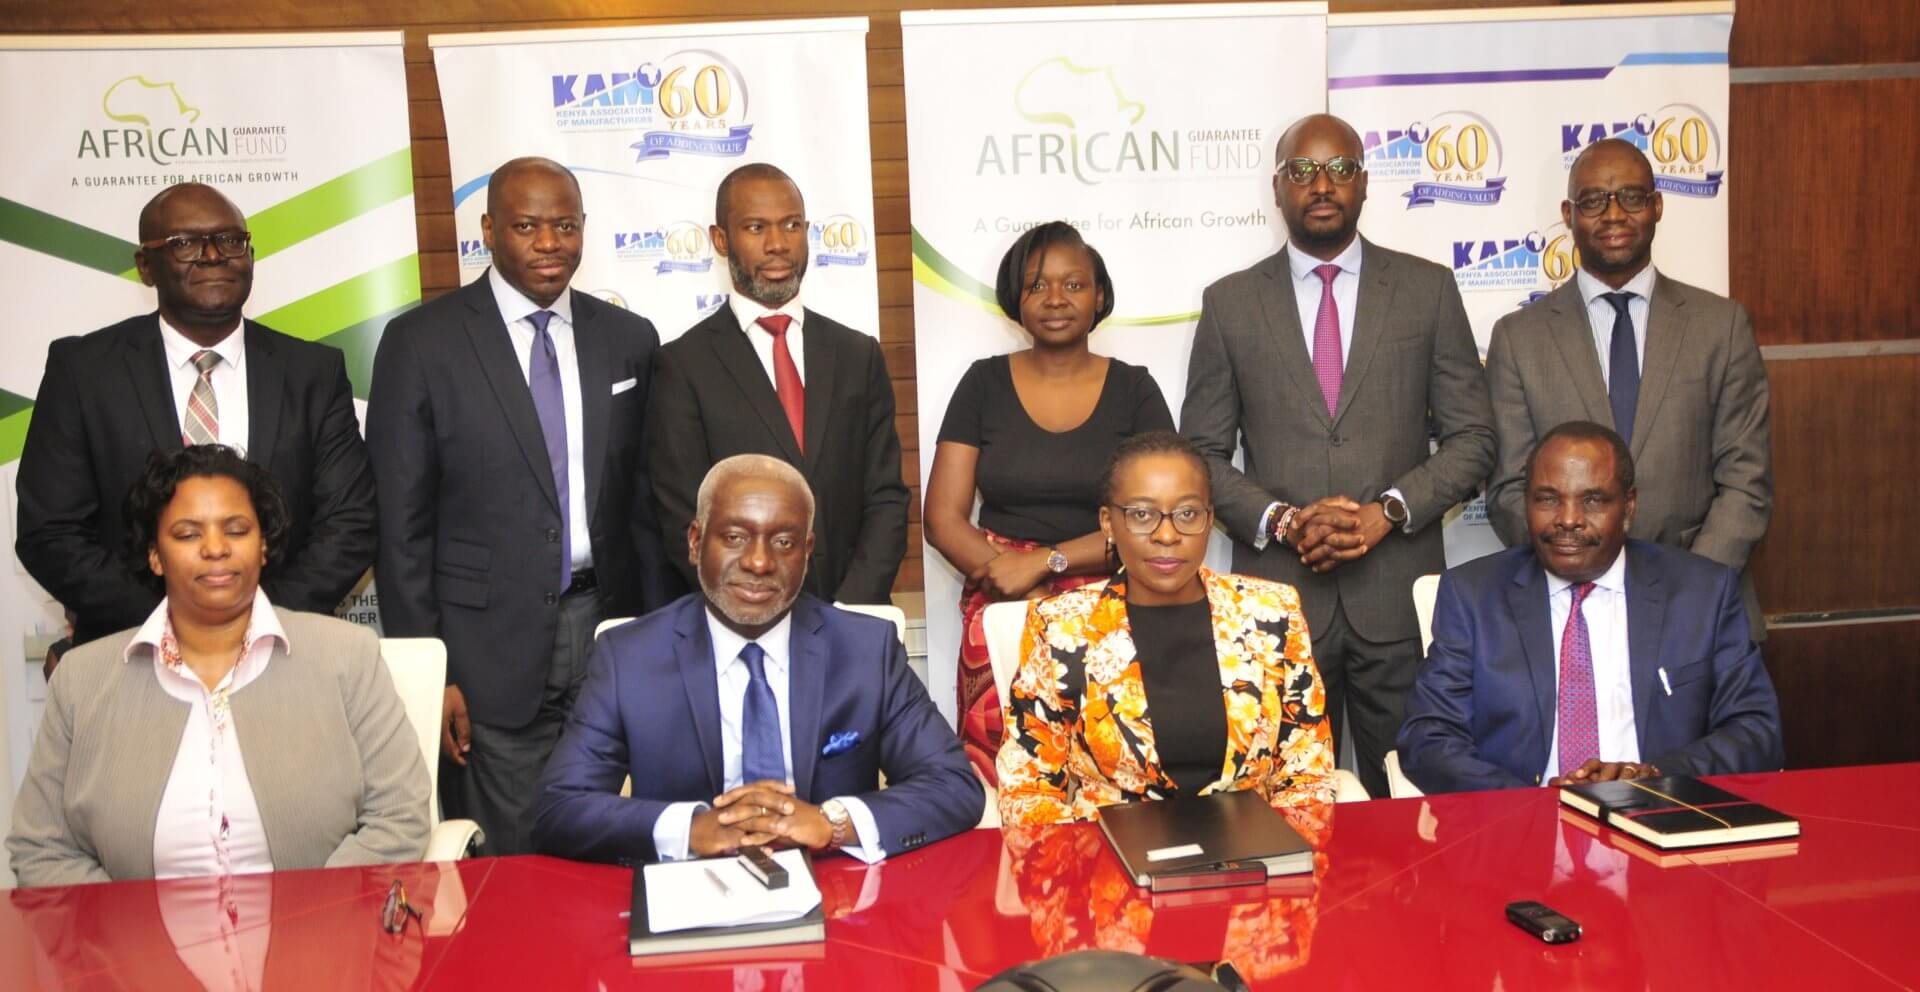 AGF SIGNS MOU WITH KENYA ASSOCIATION OF MANUFACTURERS